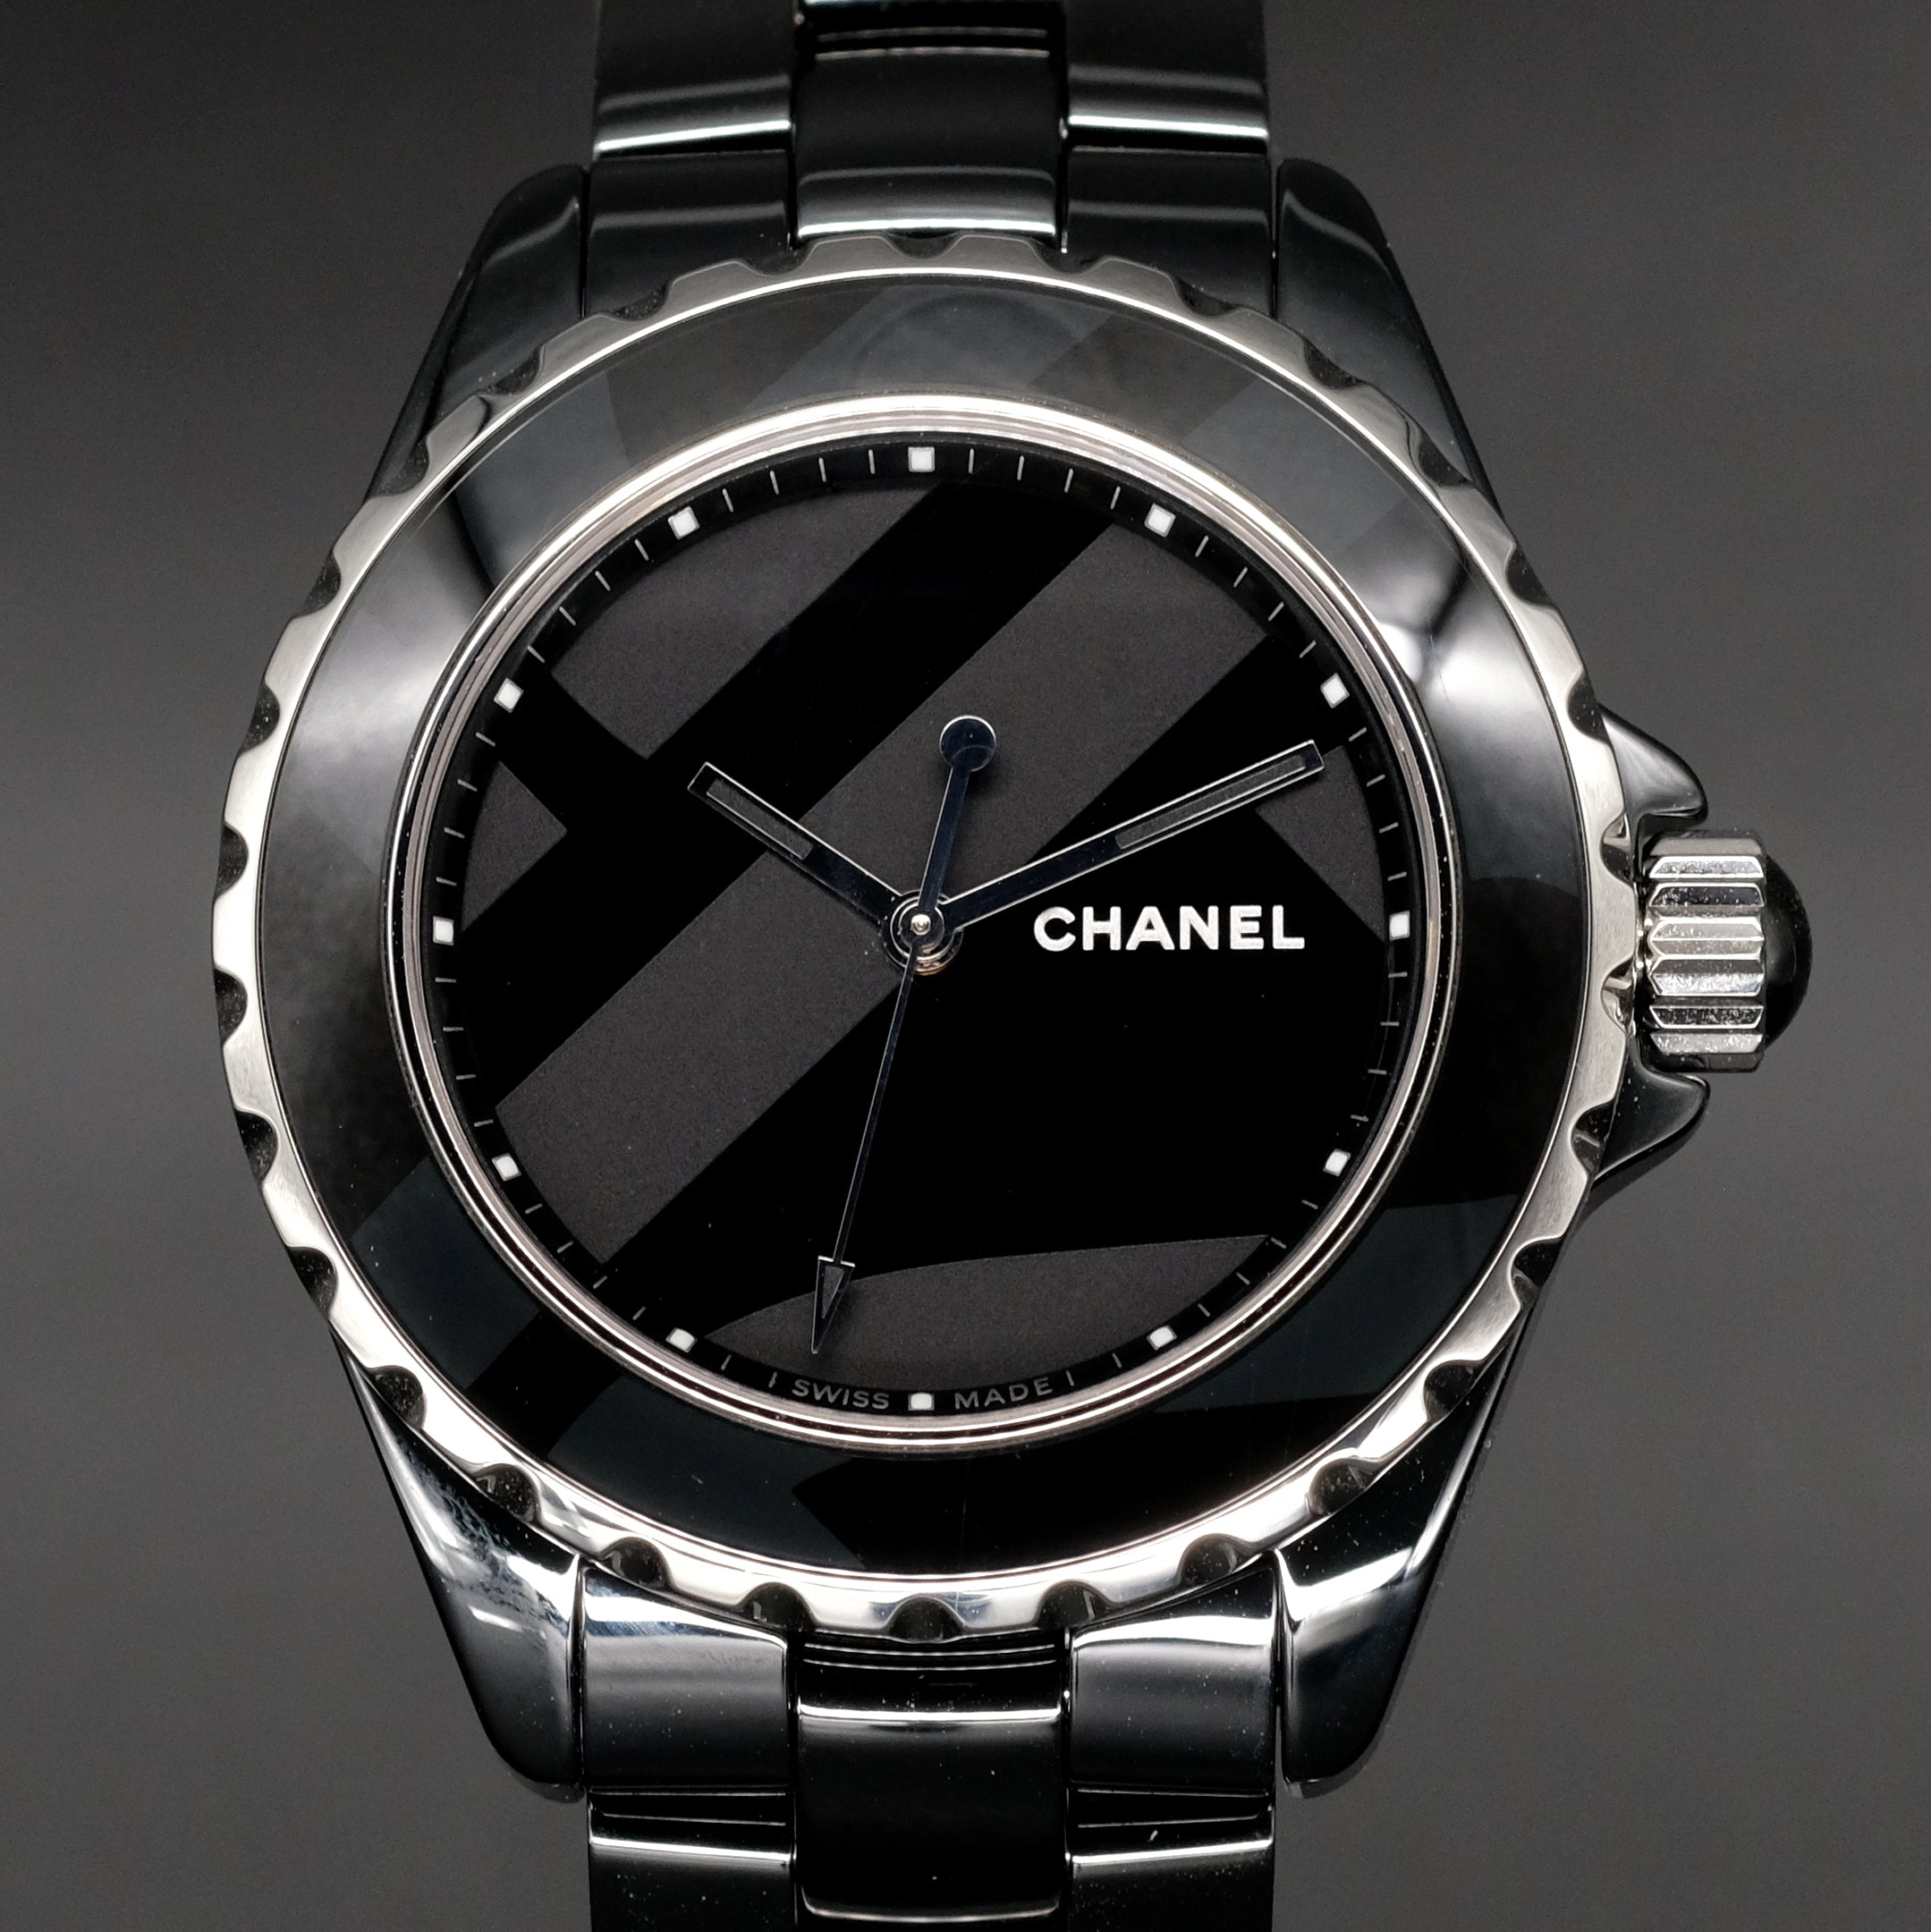 [Brand New Watch] Chanel J12 Untitled Watch 38mm H5581 (Limited Edition of 1200 Pieces)